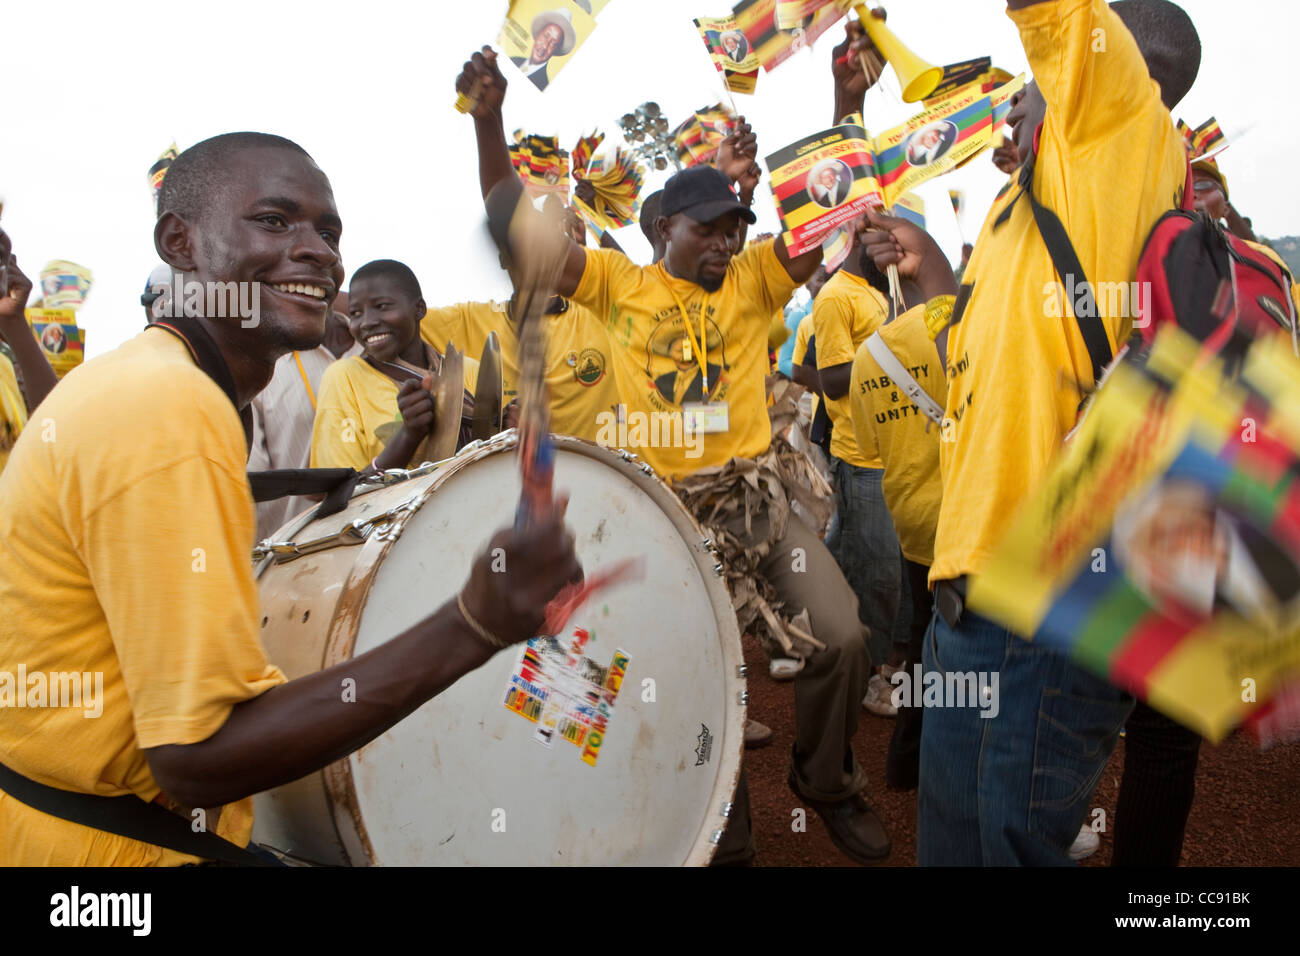 Supporters of President Museveni rally in Kampala, Uganda ahead of the 2011 election. - Stock Image